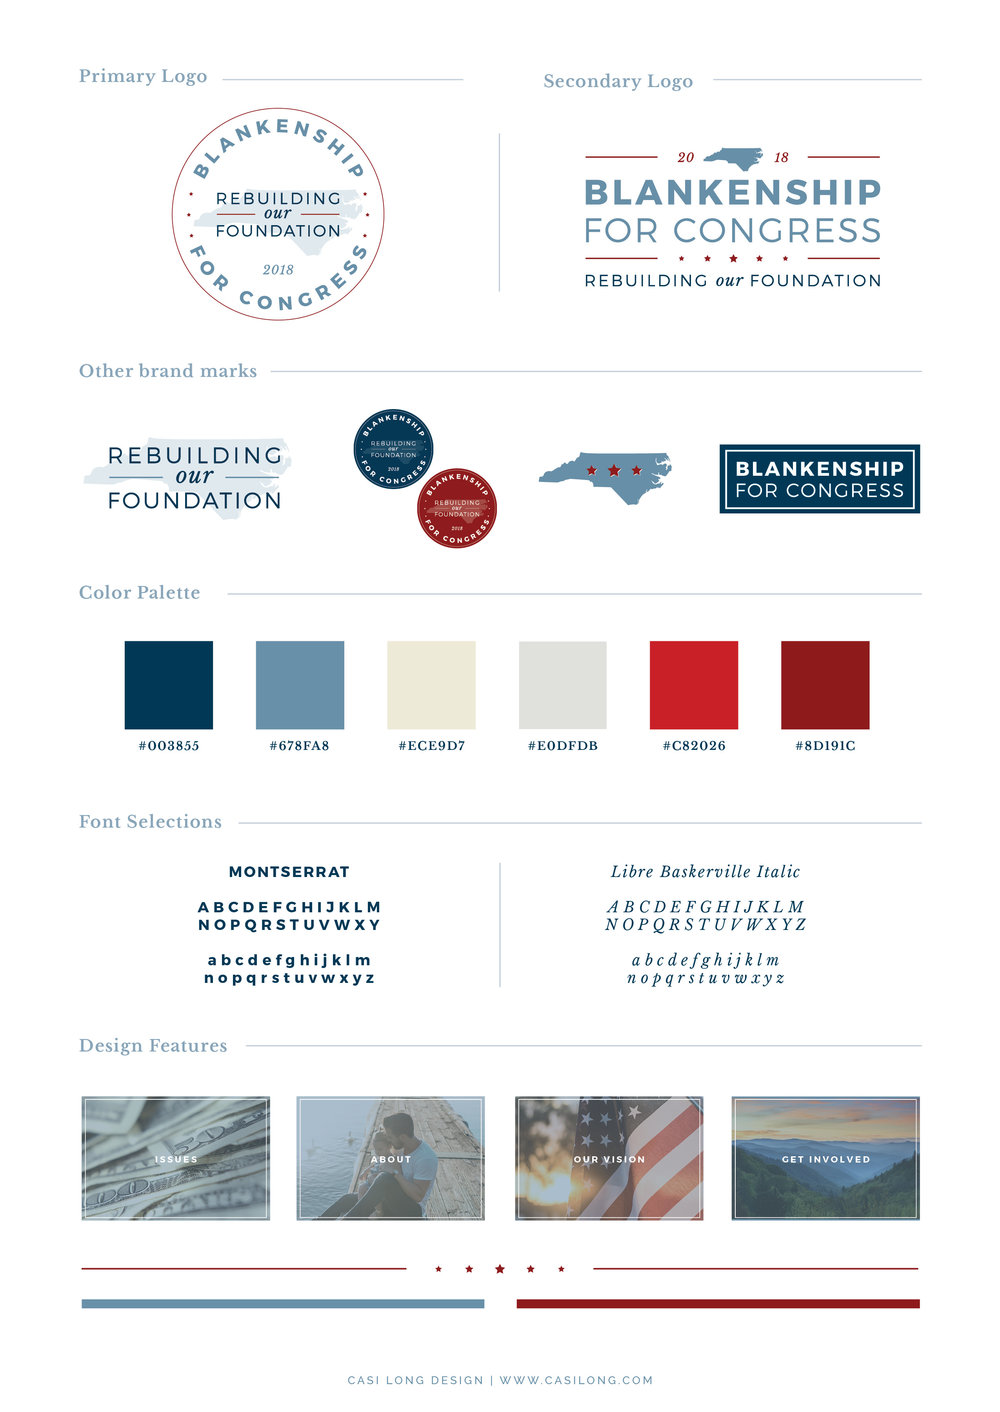 Style Guide | Blankenship for Congress | www.blankenshipforcongress.com